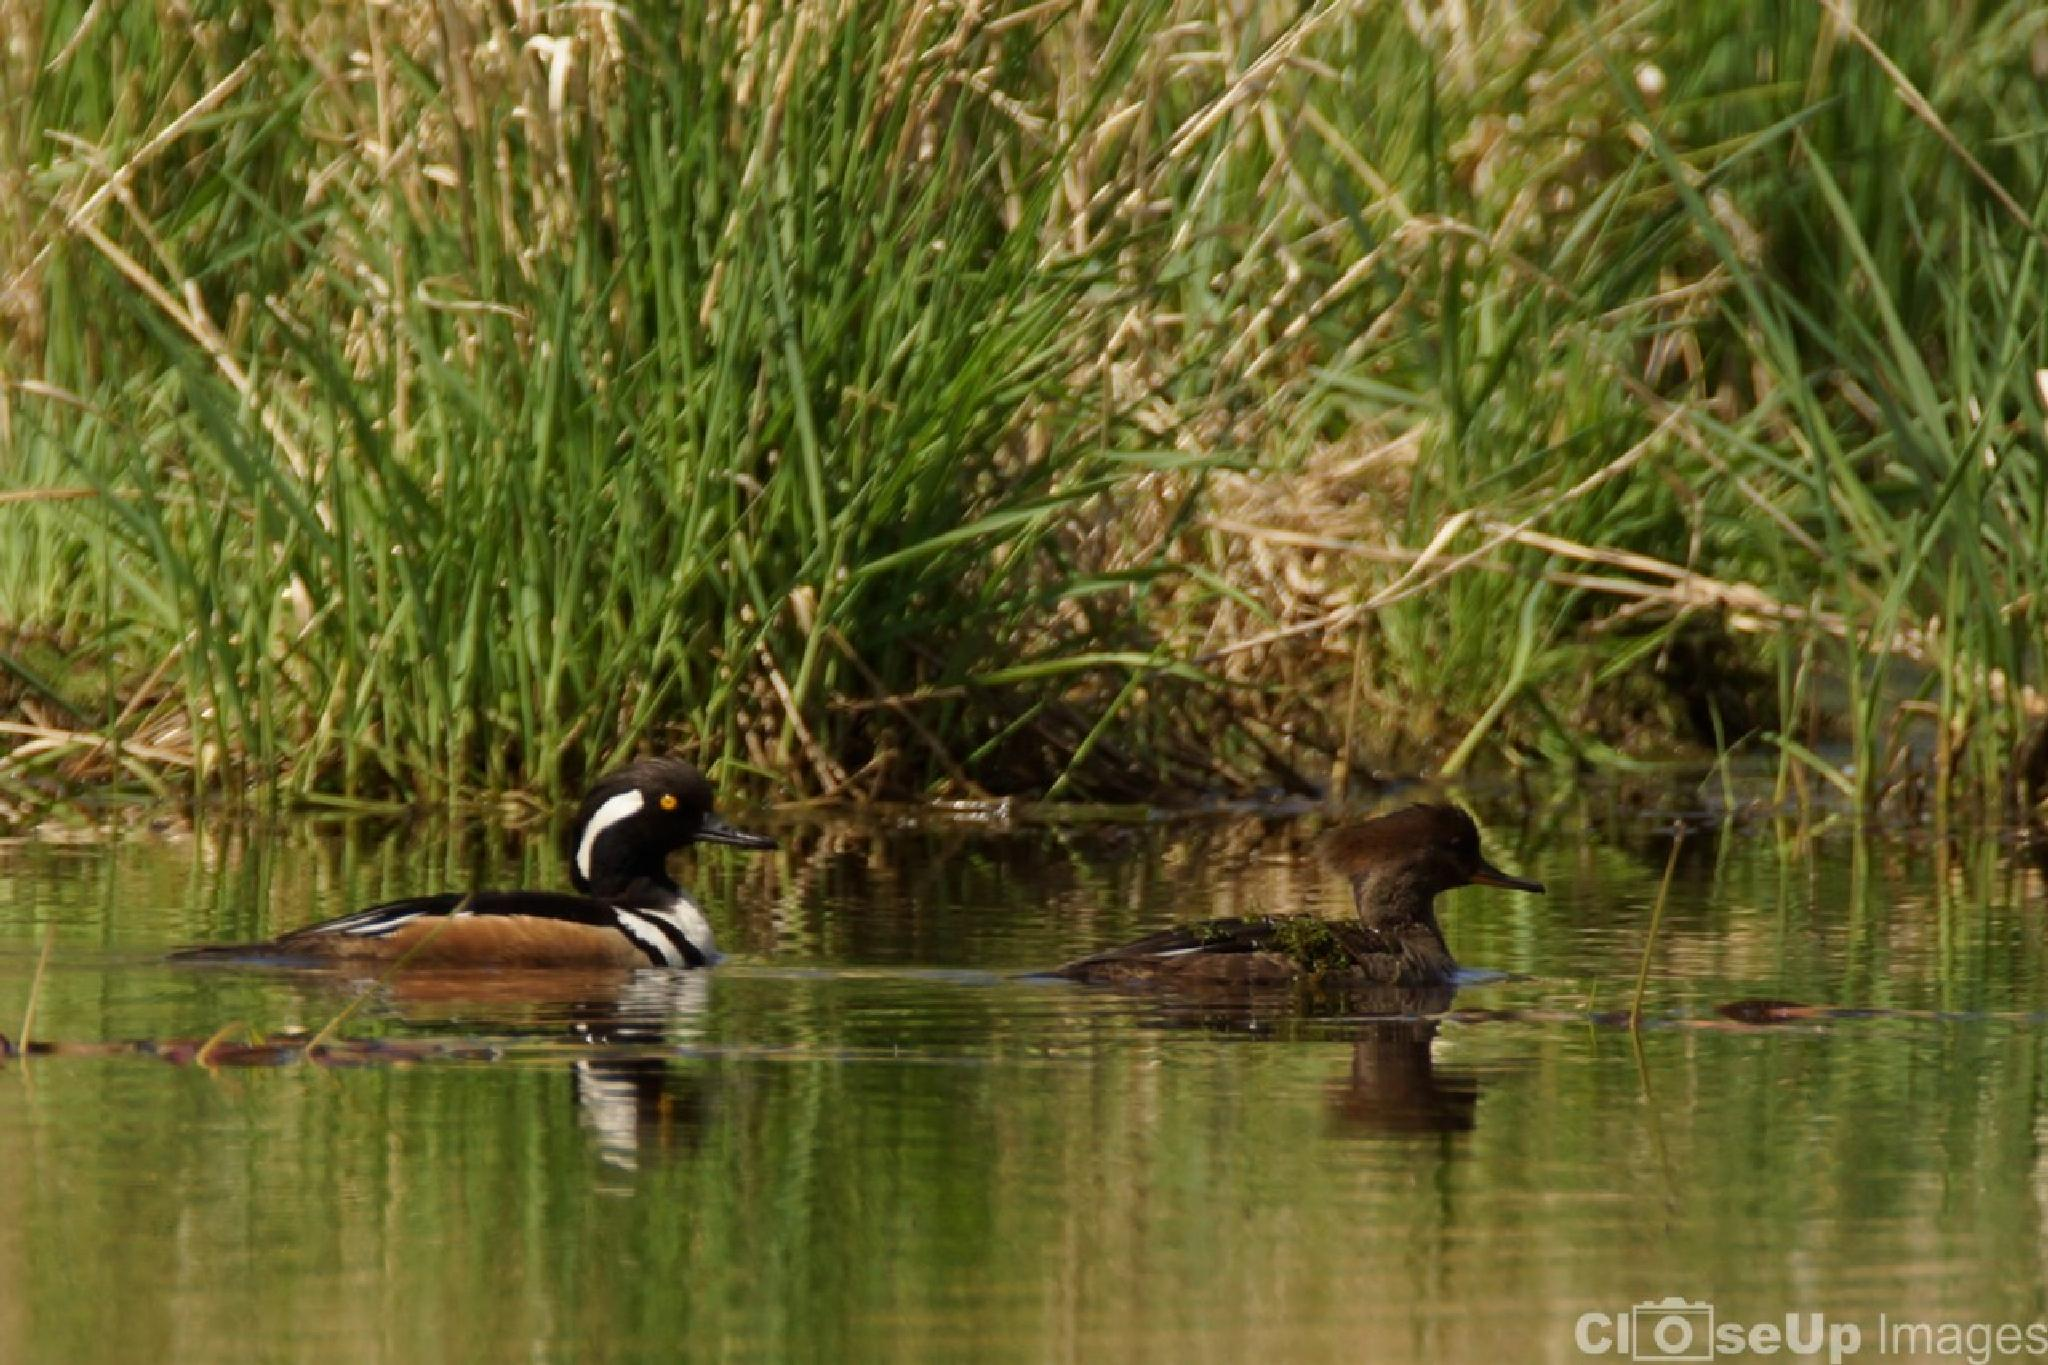 Hooded Merganser by CloseUpImages